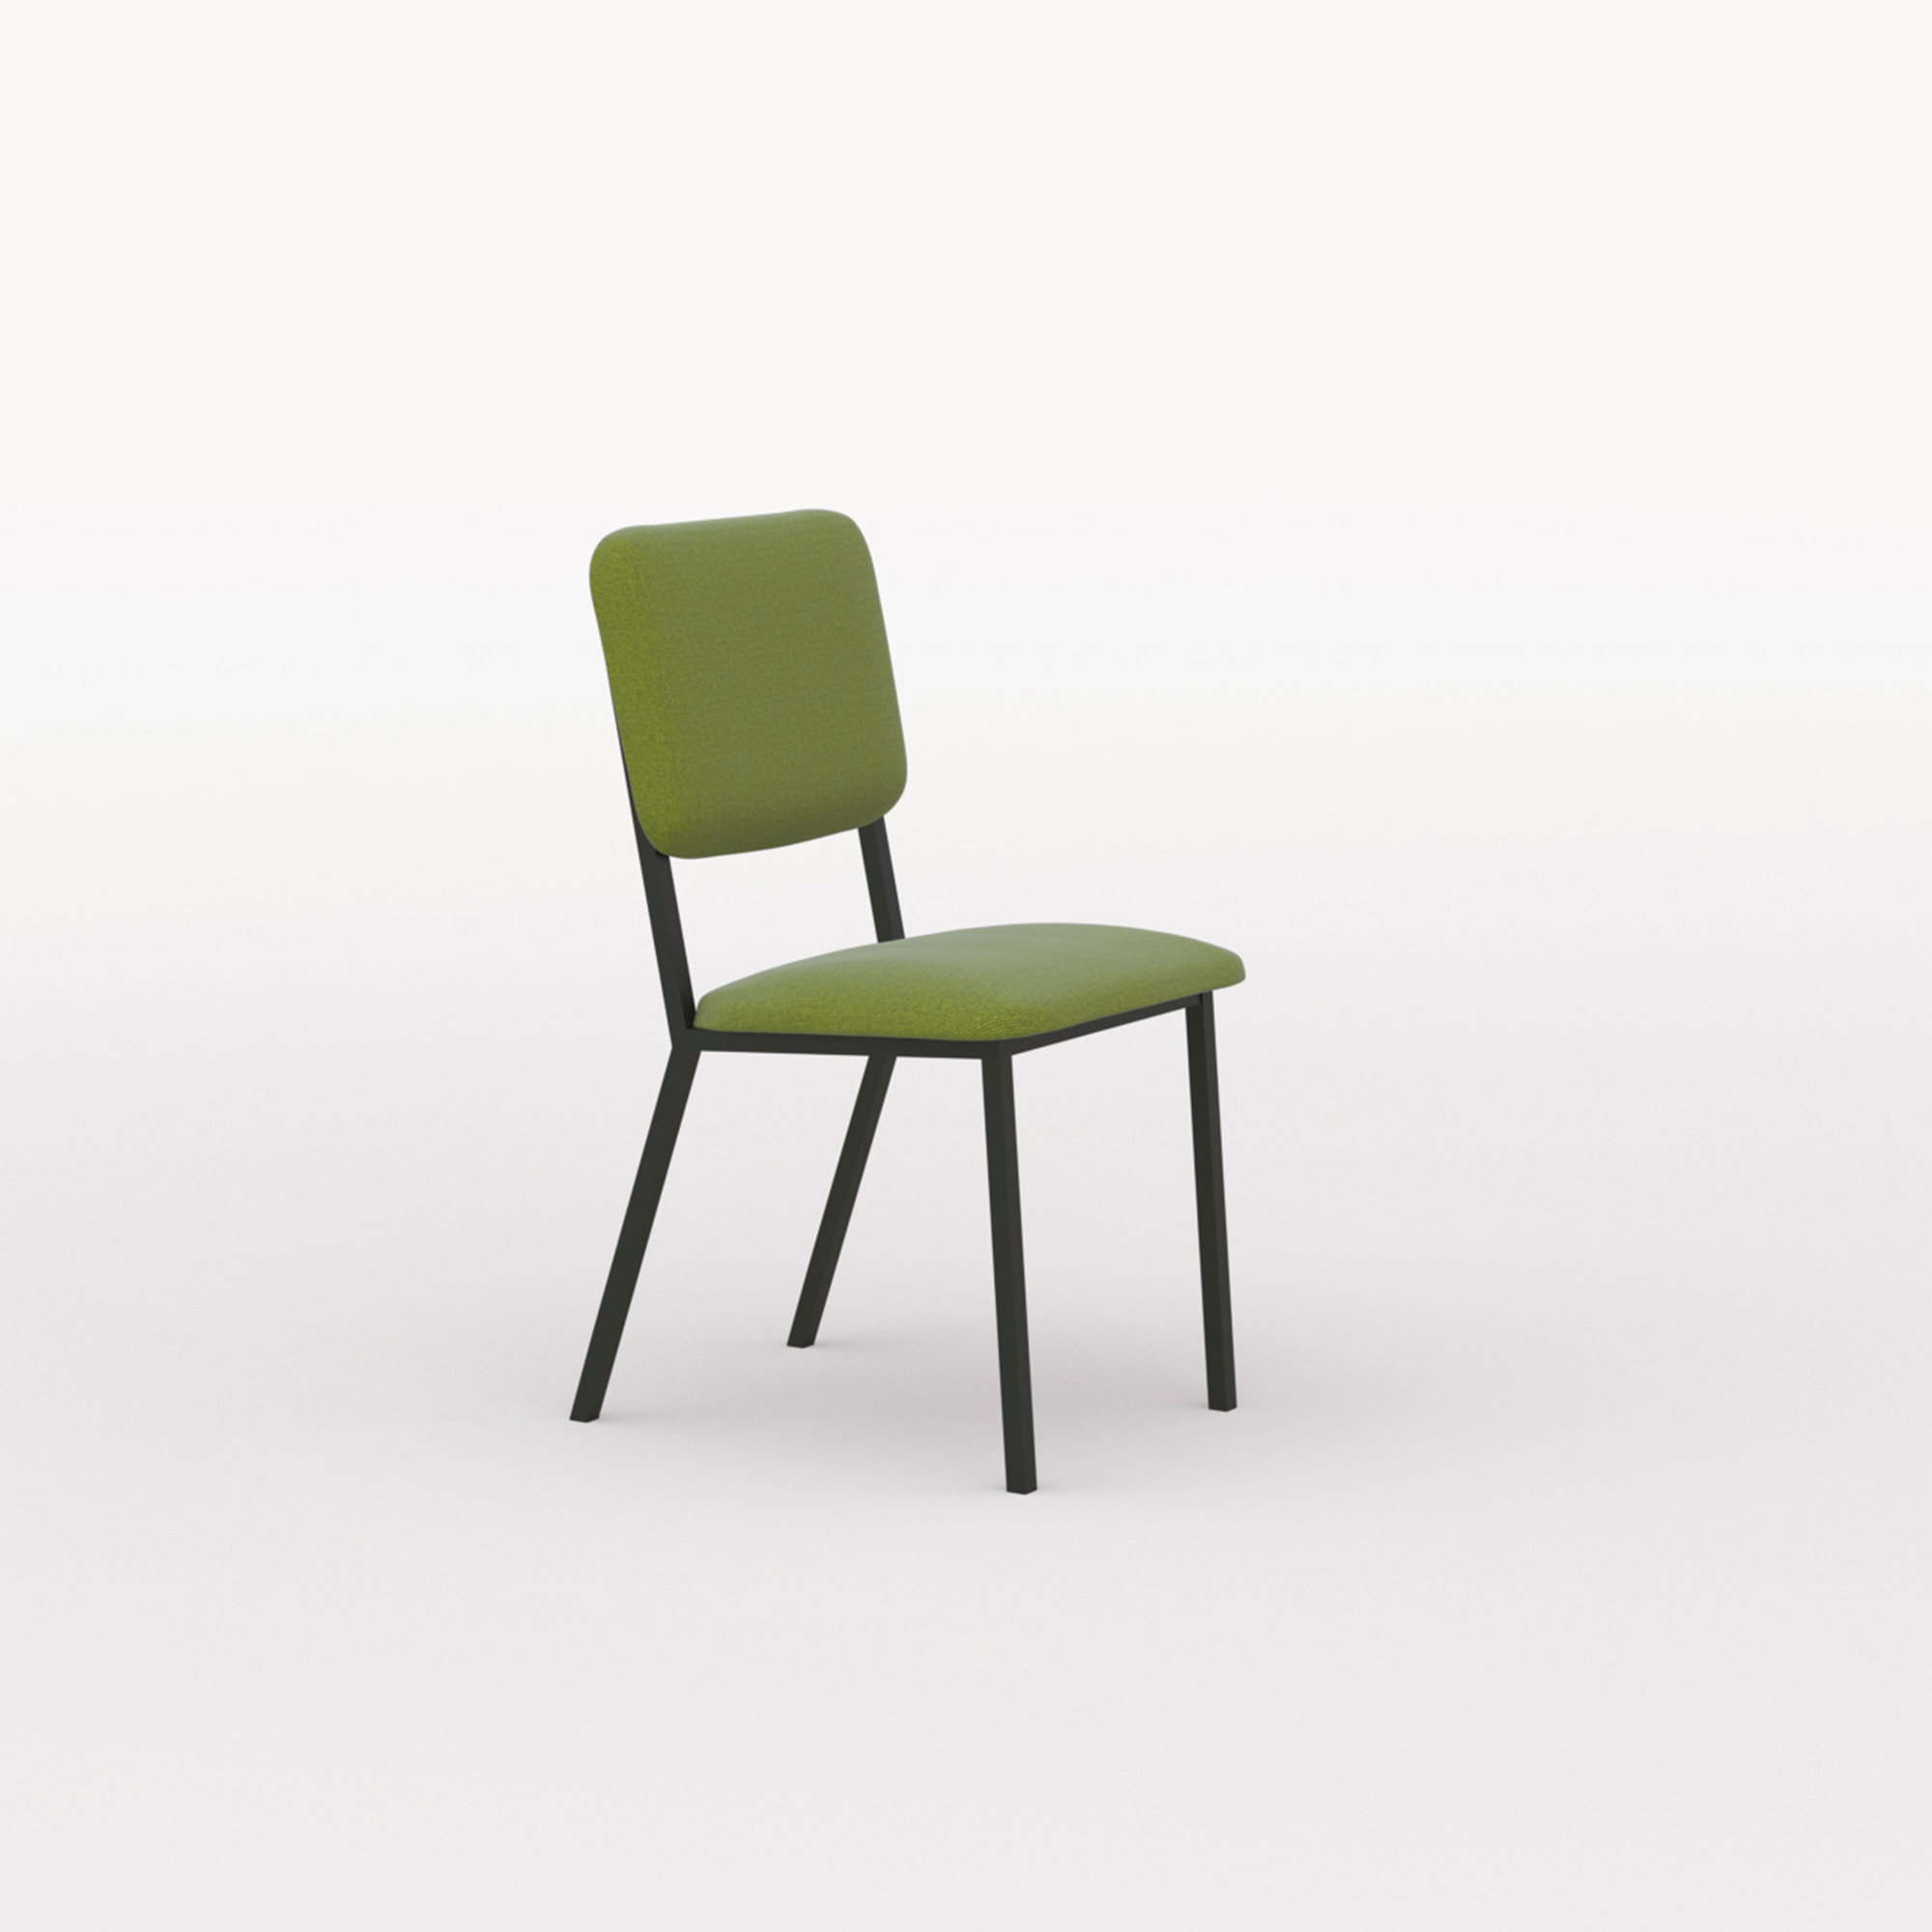 Design eetkamerstoel | Co Chair without armrest hallingdal65 980 | Studio HENK | Listing_image